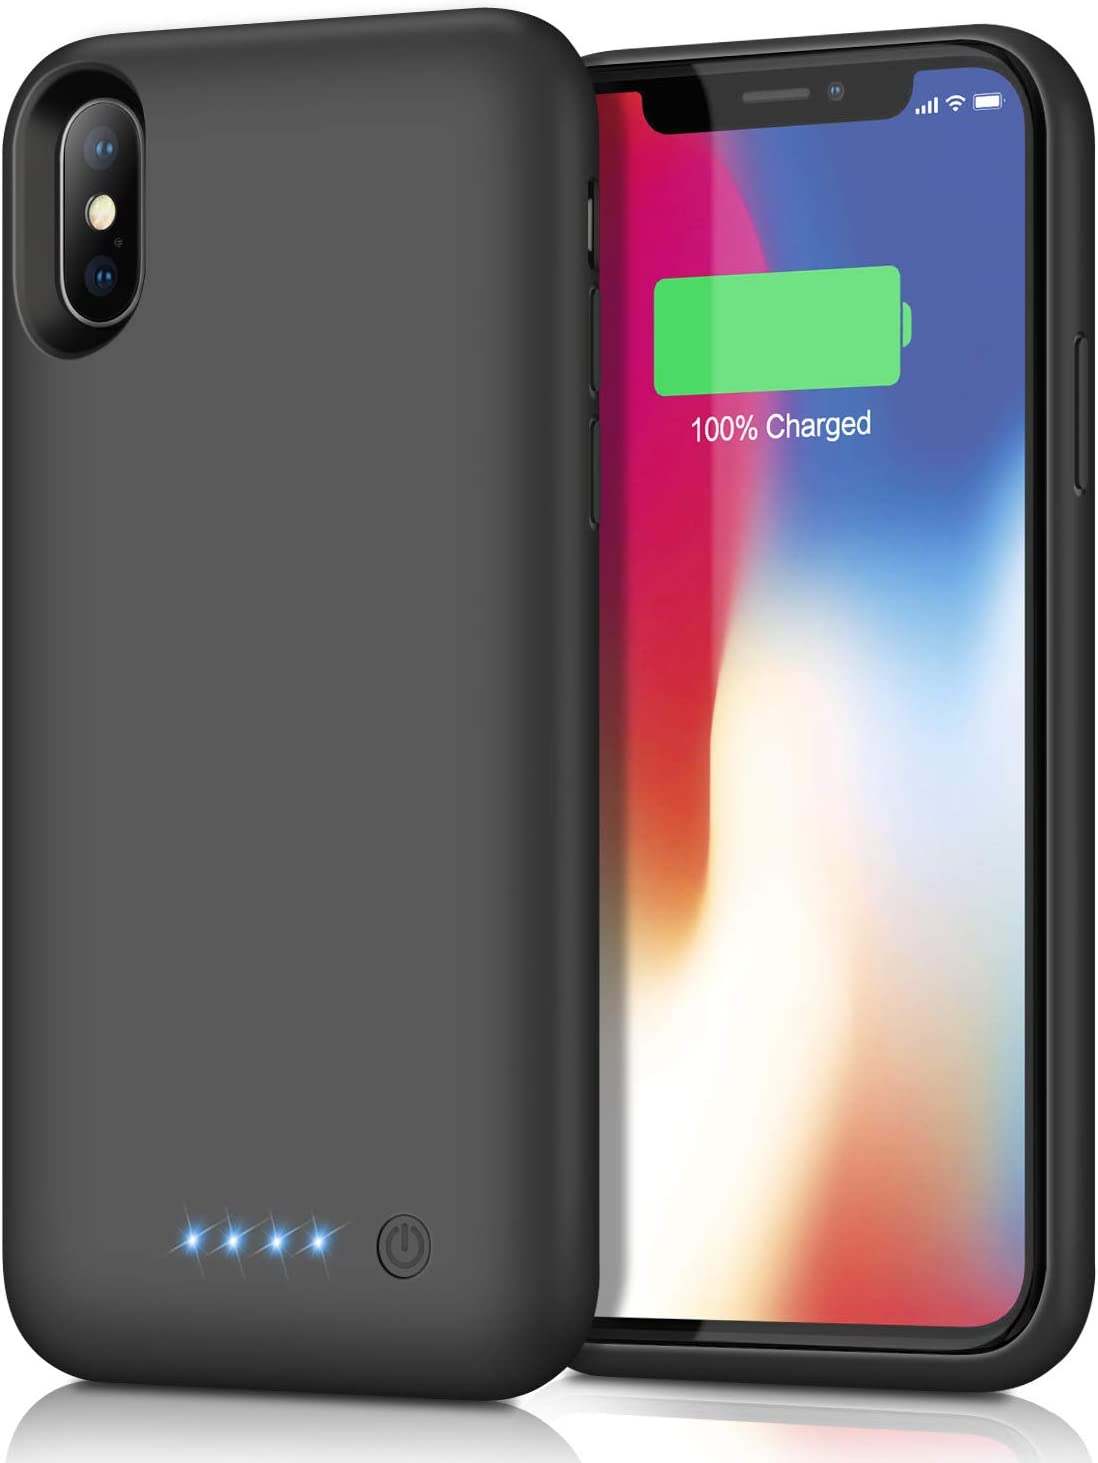 Kilponene Battery Case for iPhone XXS 【2019 Newest Version】6500mAh Charging Case Extended Battery for iPhone XXS Rechargeable Battery Backup Power